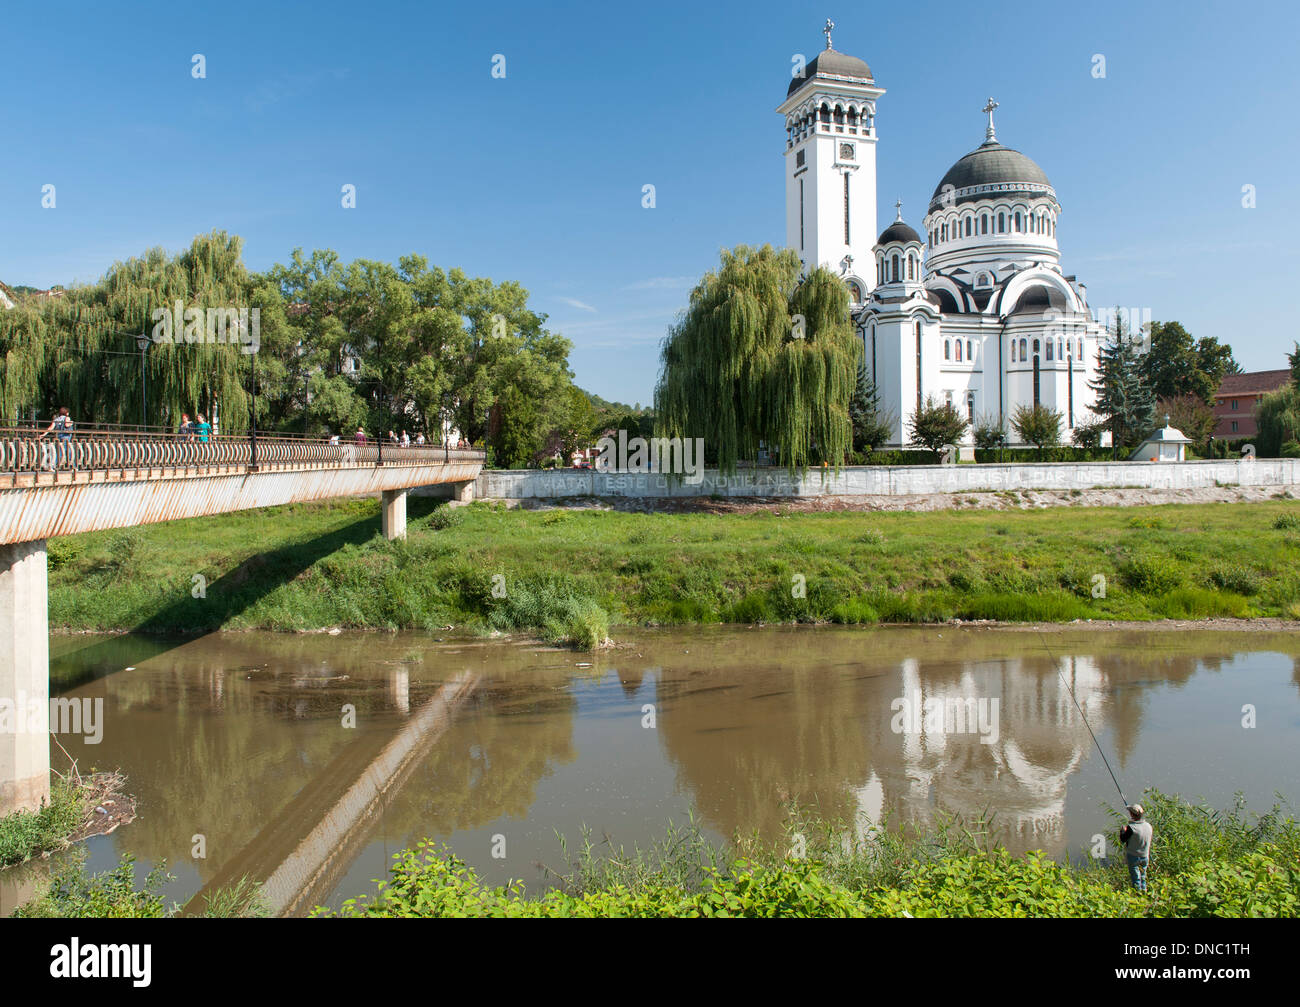 The Holy Trinity Church on the Târnava Mare River in Sighișoara in the Transylvania region of central Romania. - Stock Image